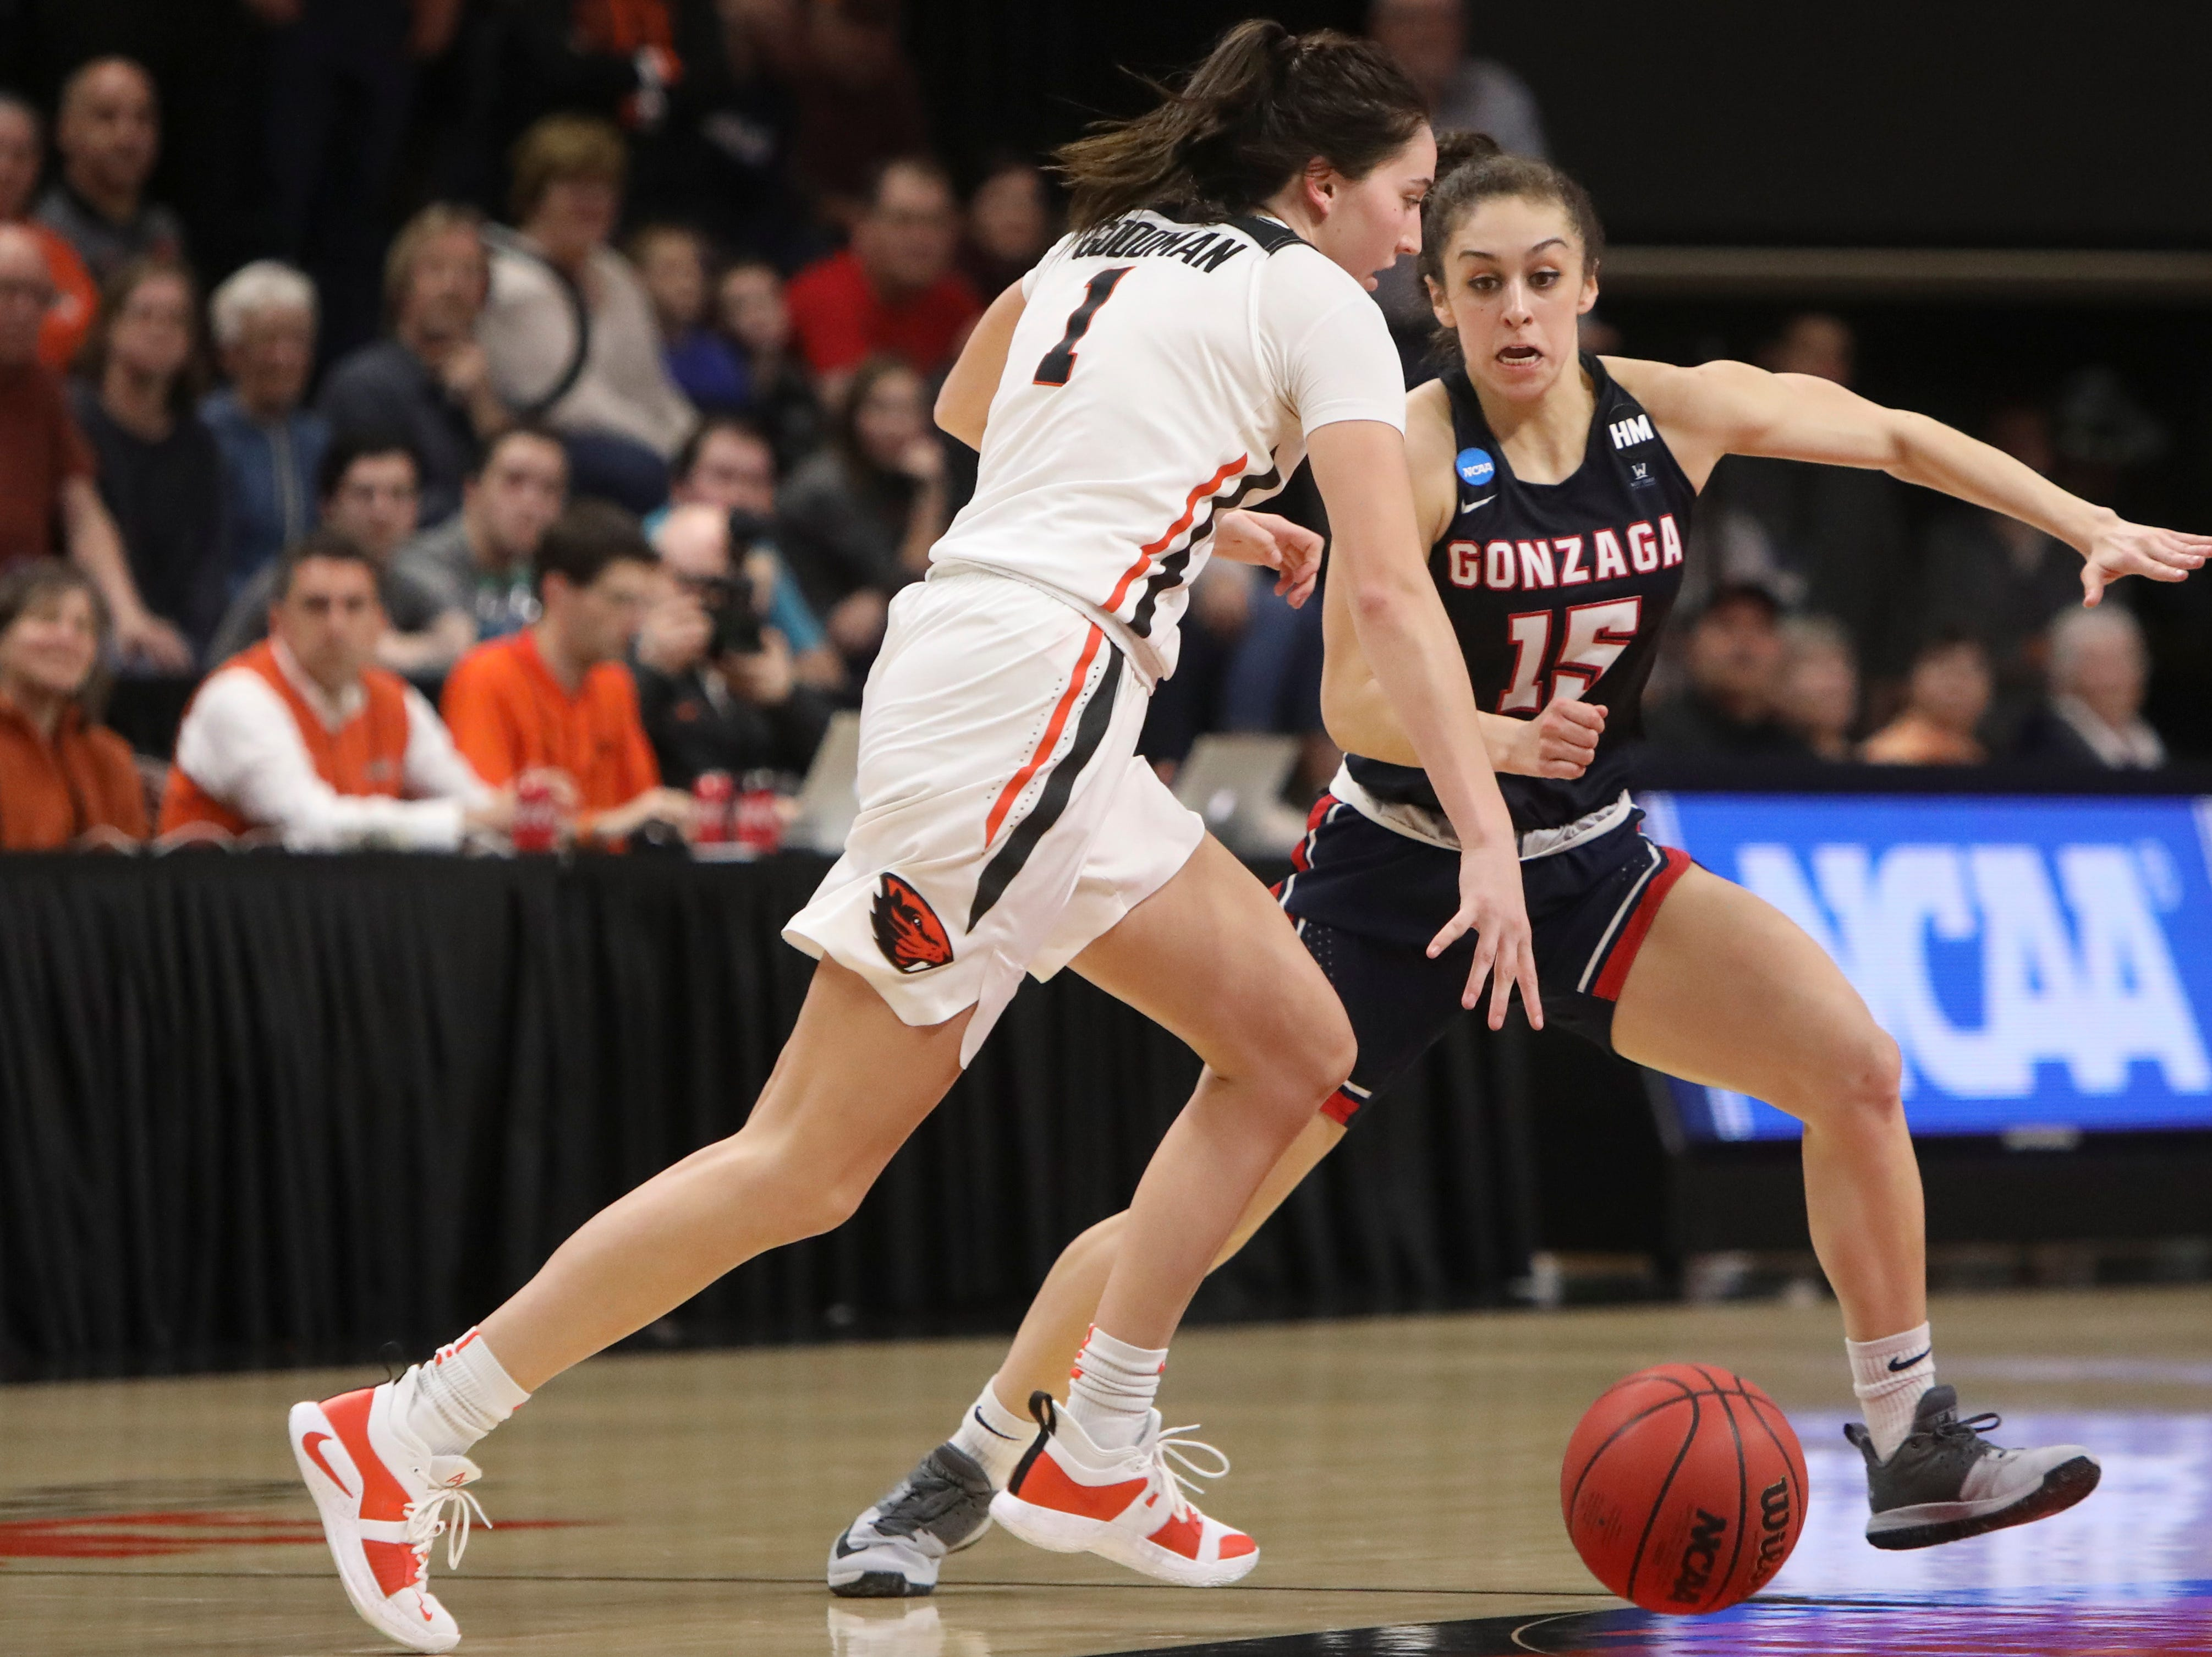 Gonzaga's Jessie Loera (15) races Oregon State's Aleah Goodman (1) up the court during the second half of a second-round game of the NCAA women's college basketball tournament in Corvallis, Ore., Monday, March 25, 2019. Oregon State won 76-70. (AP Photo/Amanda Loman)